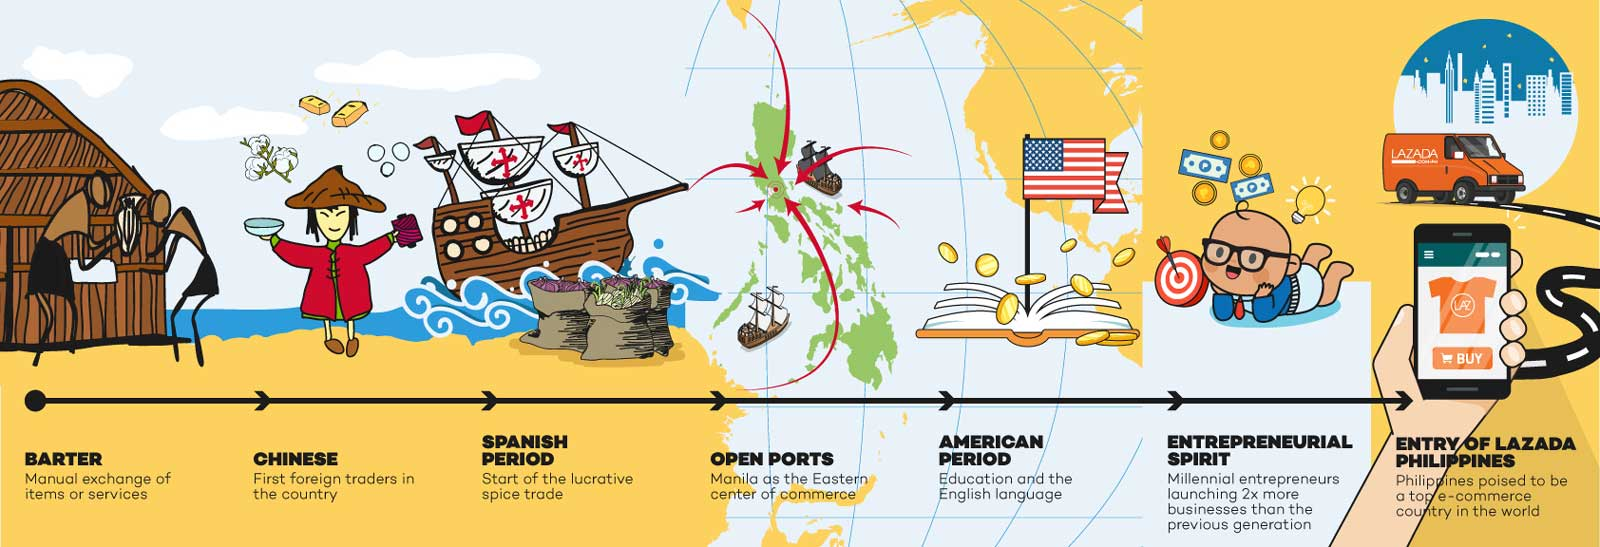 history of english language in the philippines